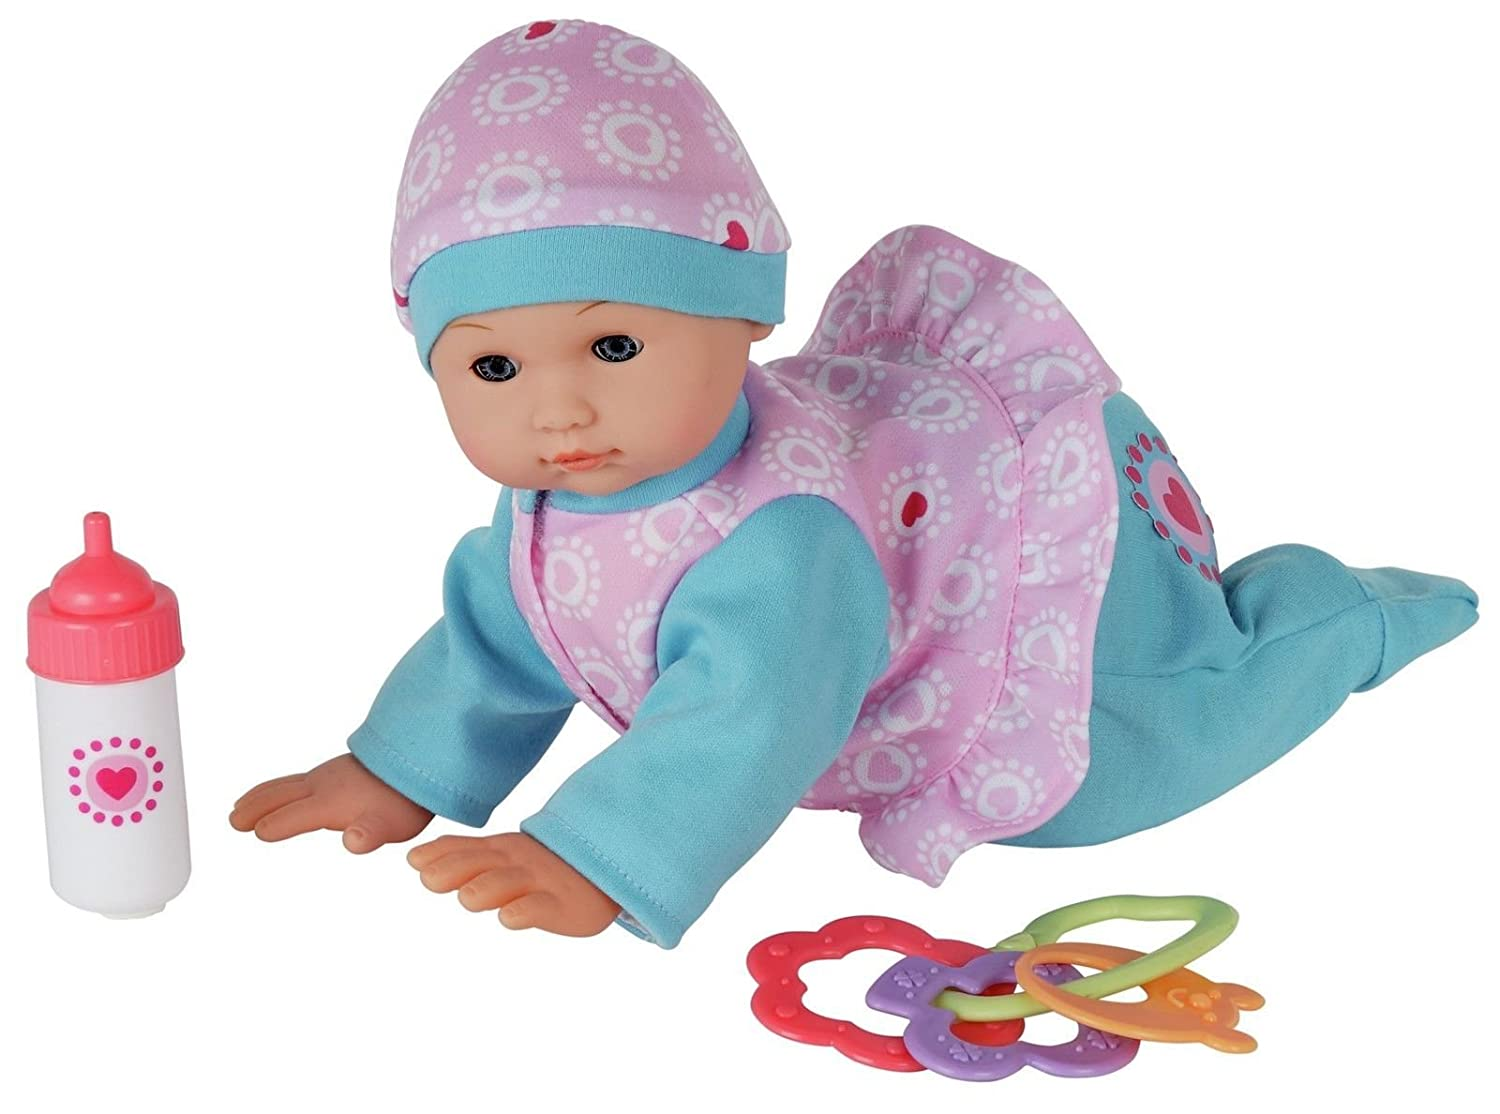 Chad Valley Crawling Doll With Accessories